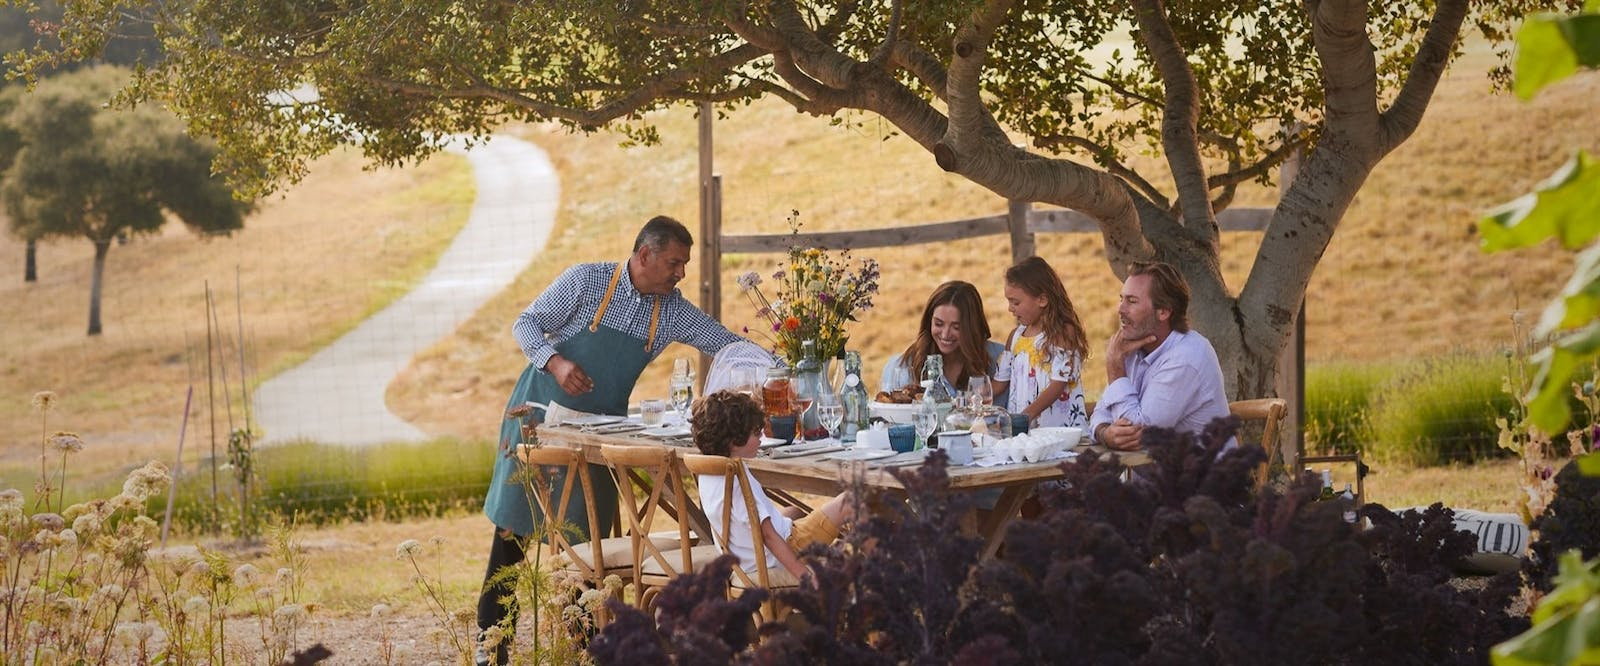 Private Dining Family Breakfast at Carmel Valley Ranch, California